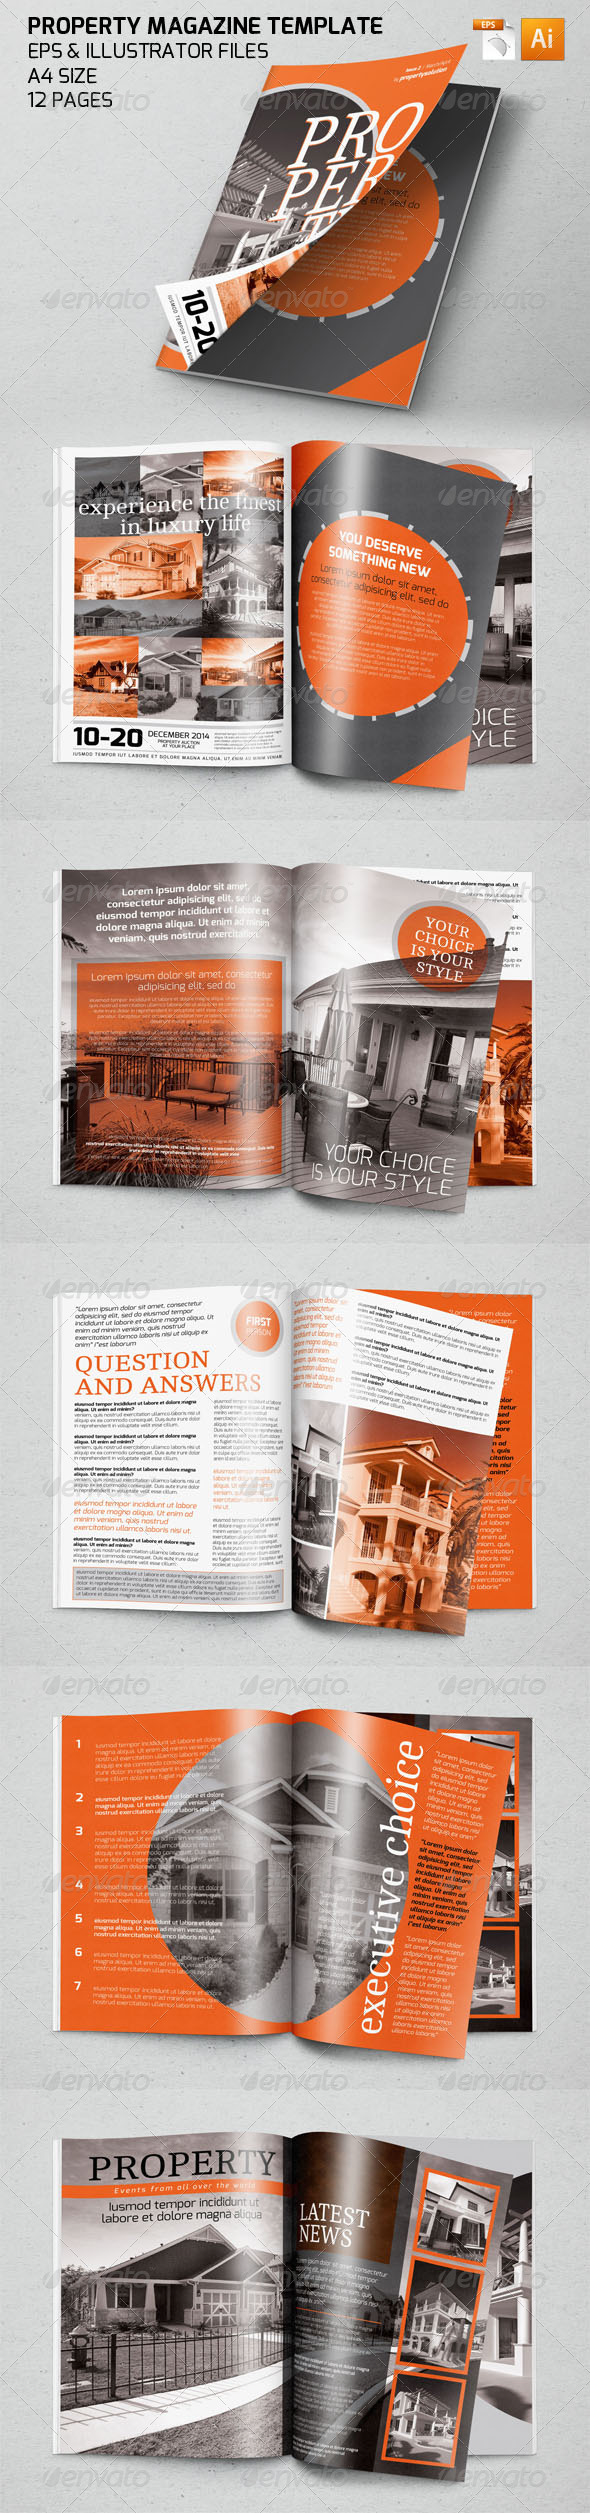 Property Magazine Template by ZONKASH | GraphicRiver